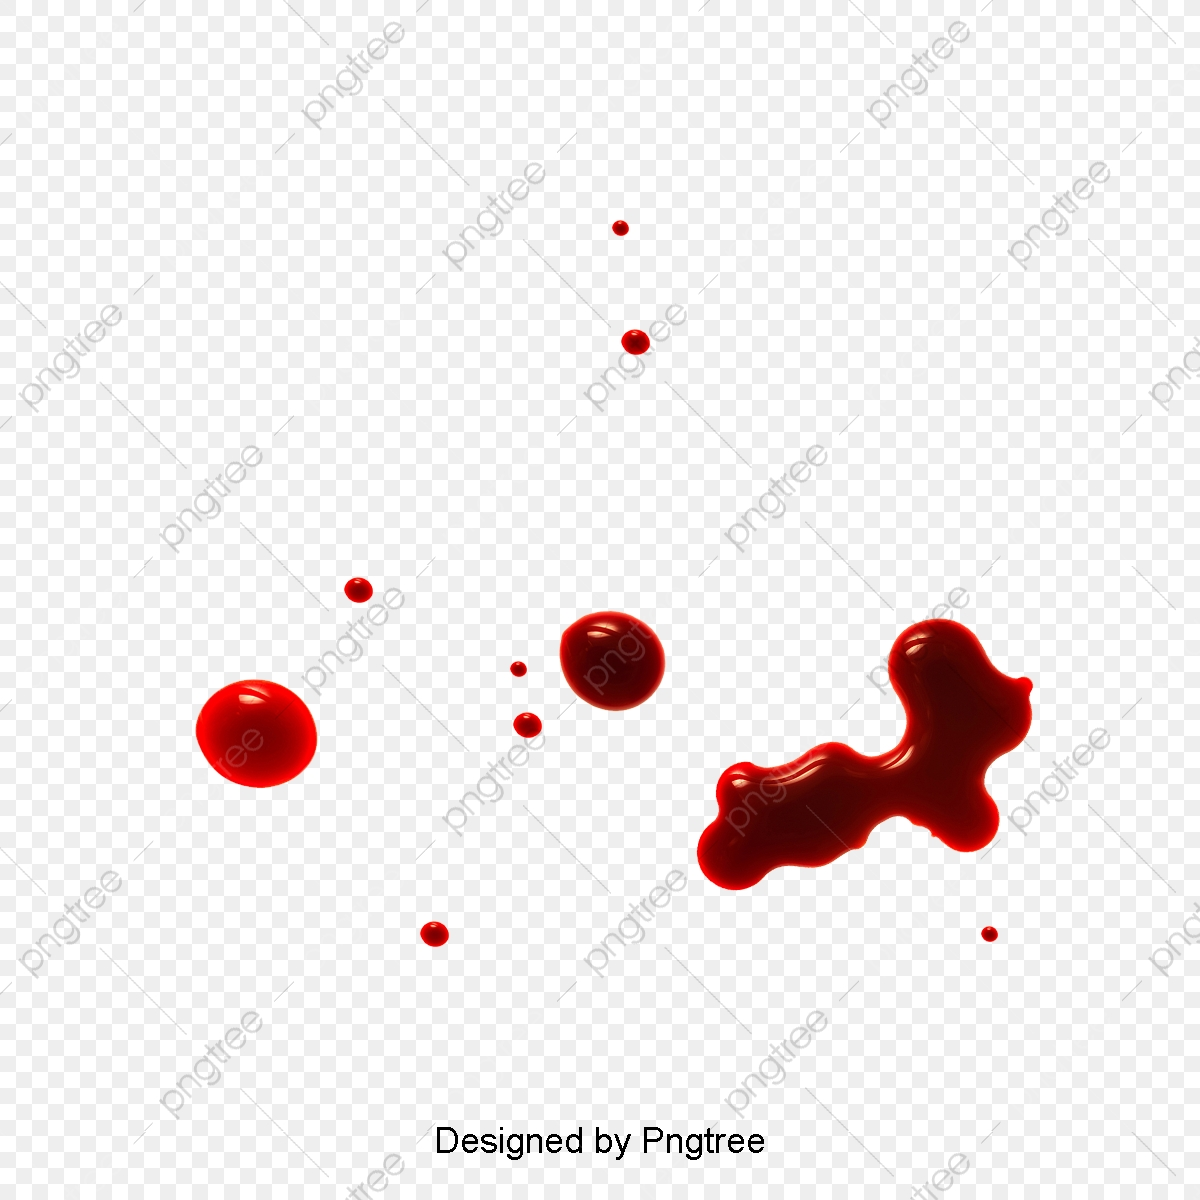 Realistic Drops Of Blood, Blood Clipart, Blood Drop, Realistic PNG.